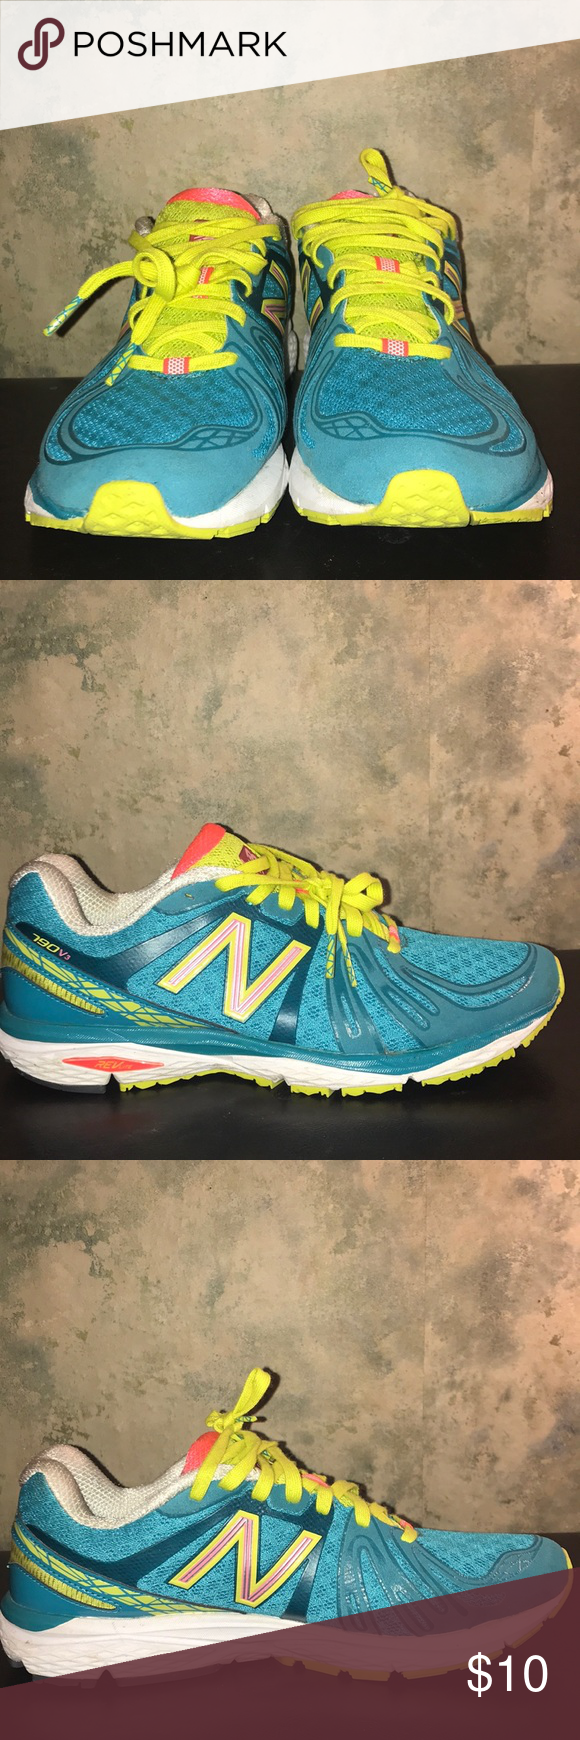 bf2ba91a062ee New Balance 790v3 Trail Running Shoe Colorful, Turquoise, Used but well  conditioned New Balance Shoes Athletic Shoes